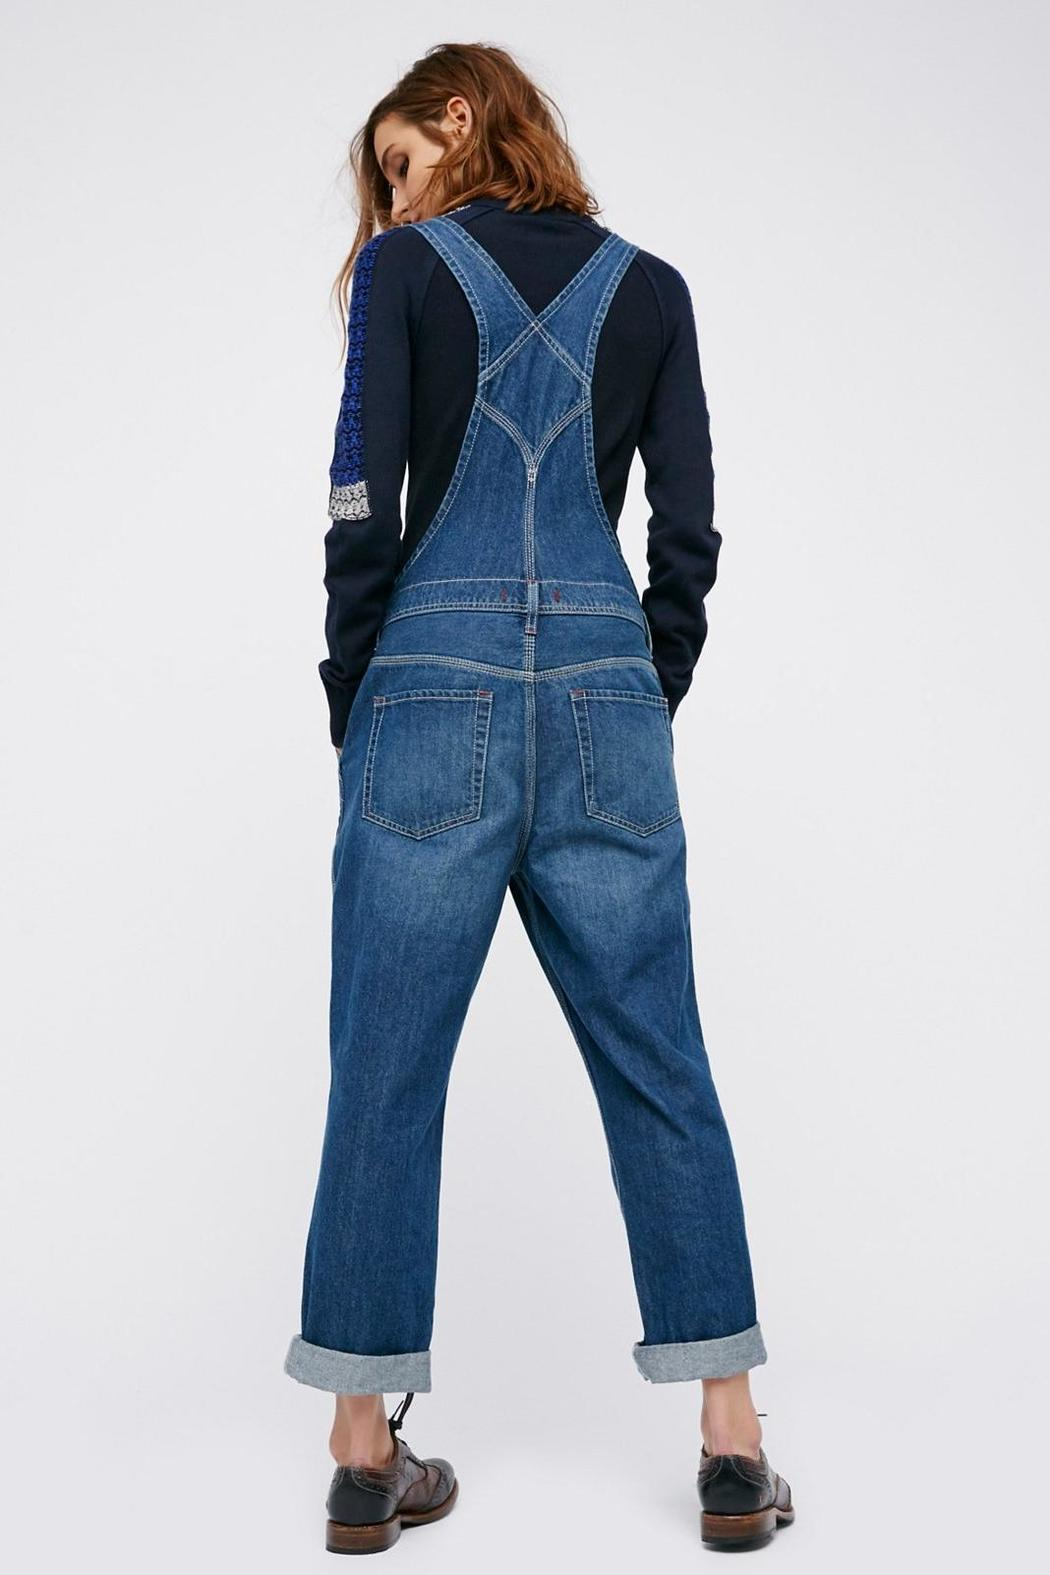 Free People Boyfriend Denim Overalls from Beverly Hills by ...